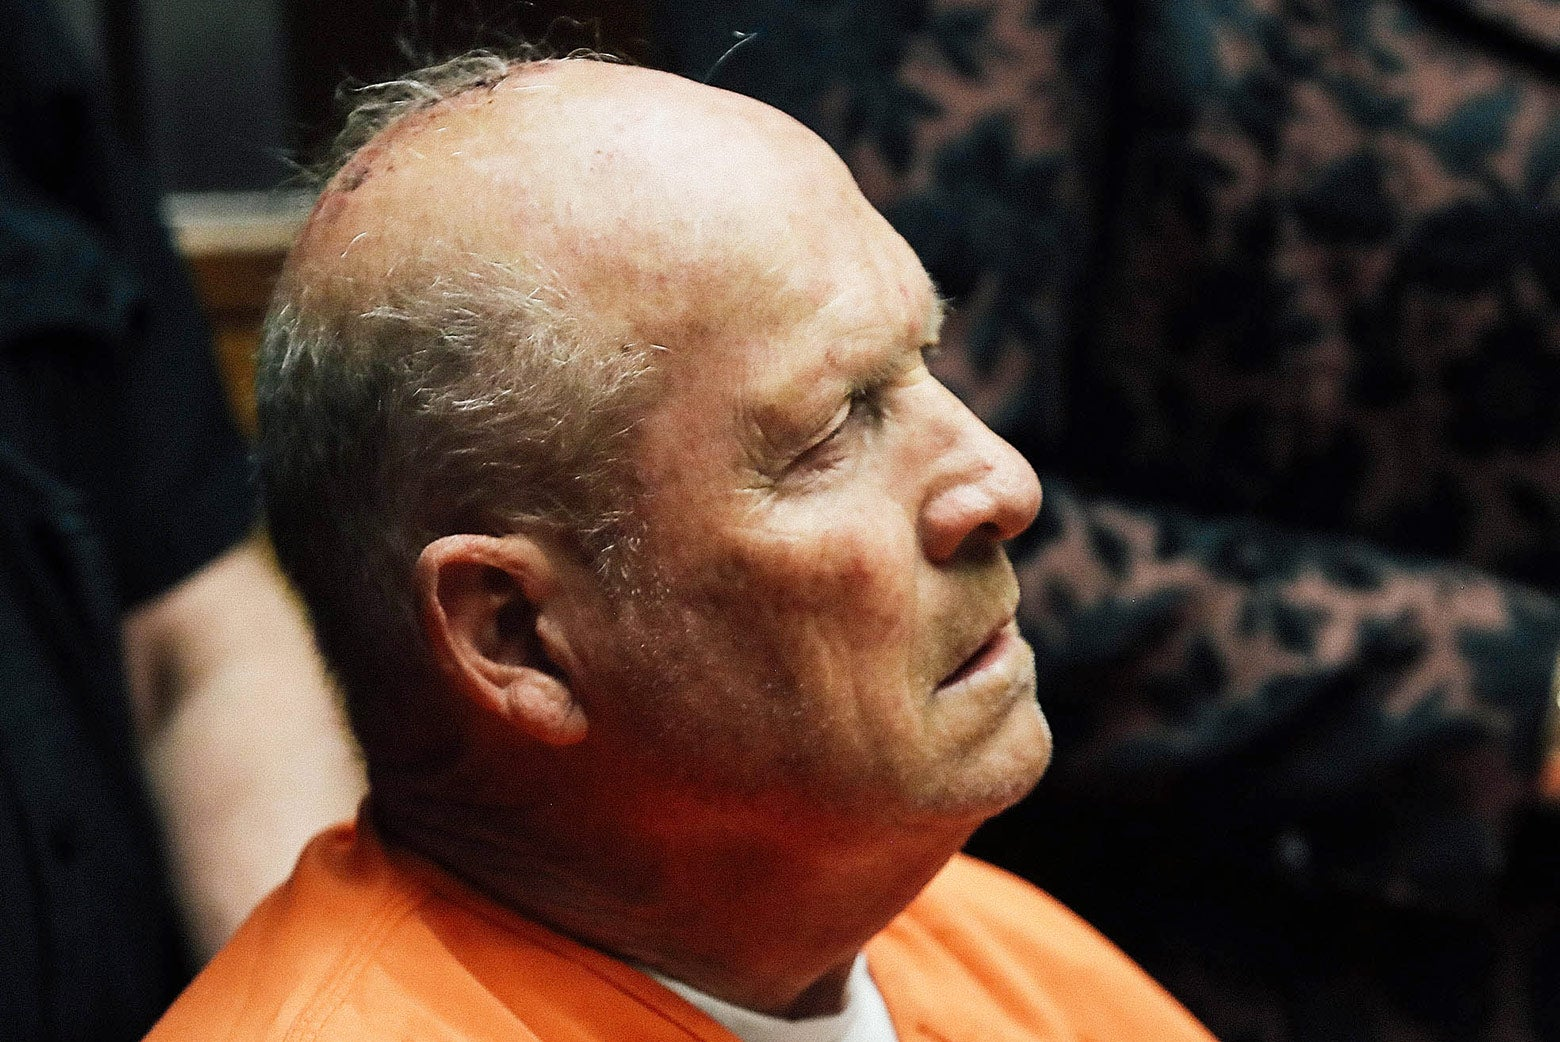 Joseph DeAngelo, the suspected Golden State Killer, appears in court for his arraignment on April 27 in Sacramento, California.